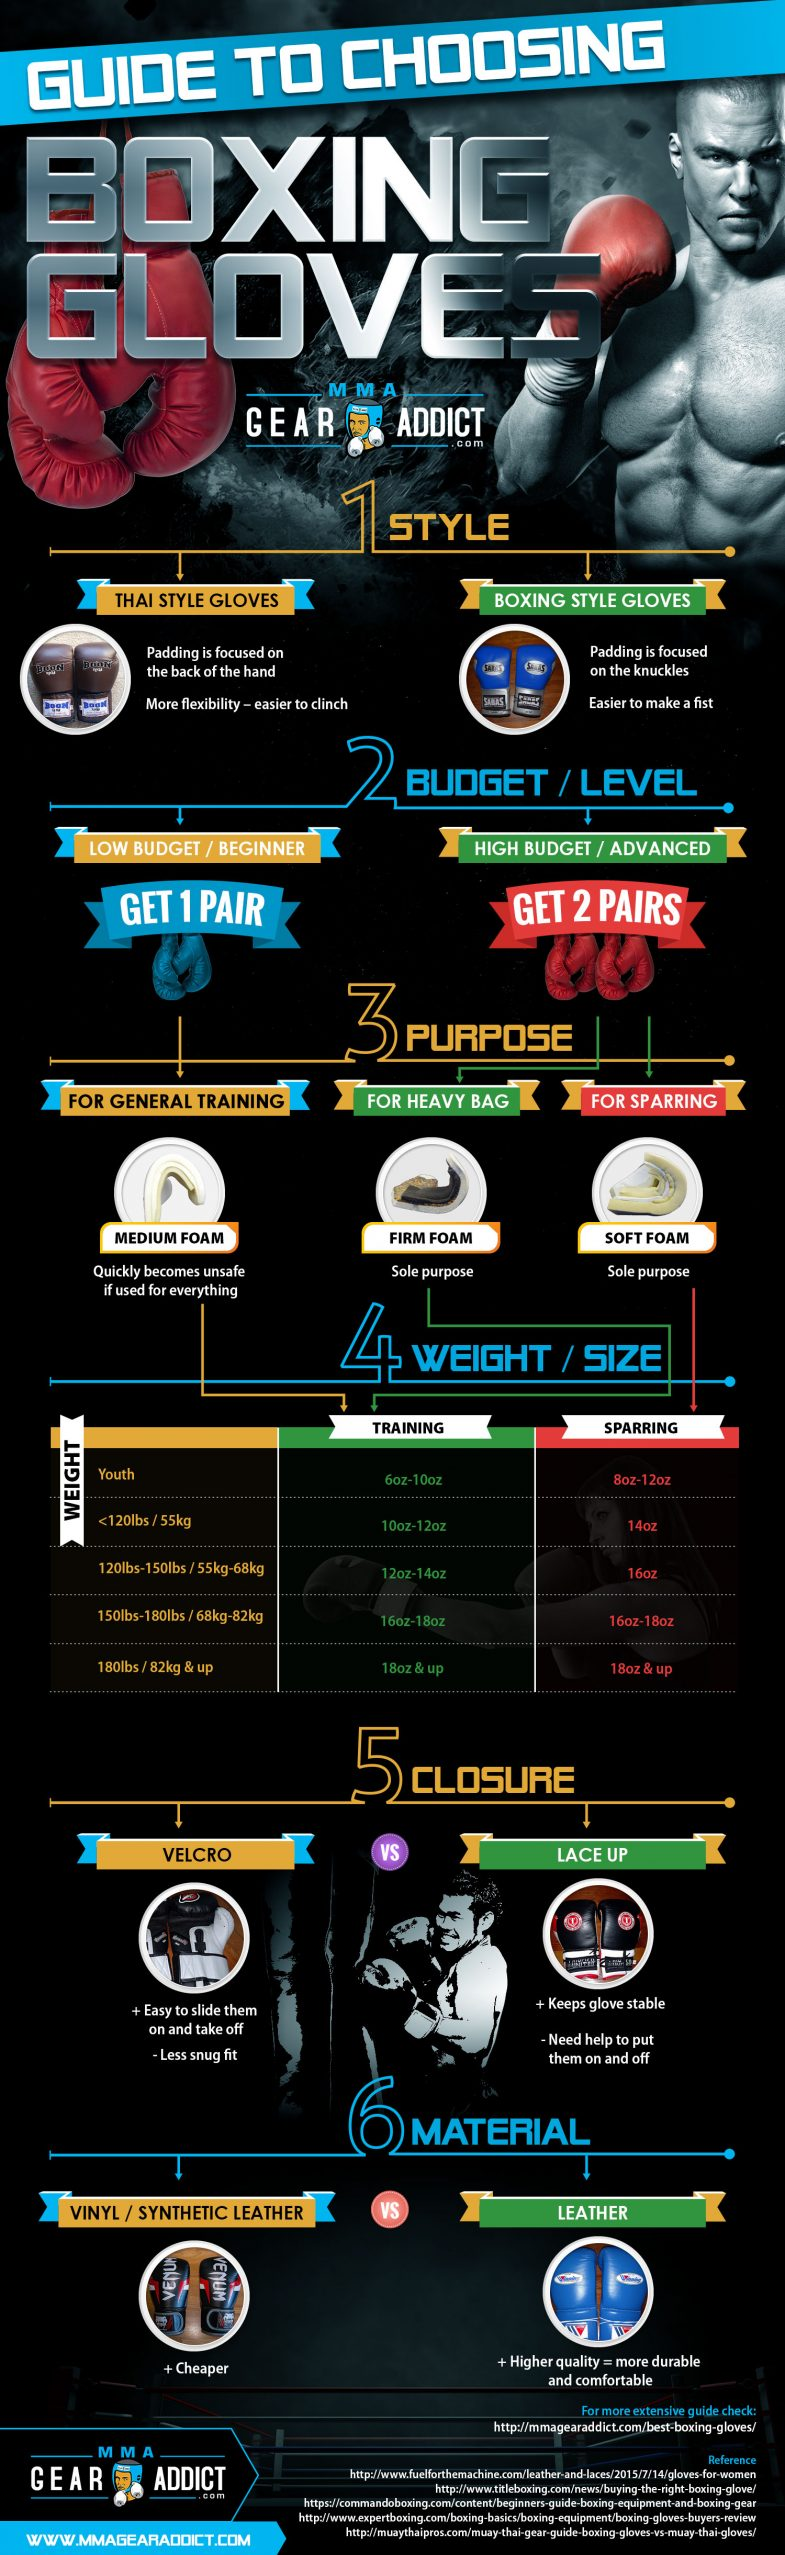 Boxing Gloves Buyer's Guide